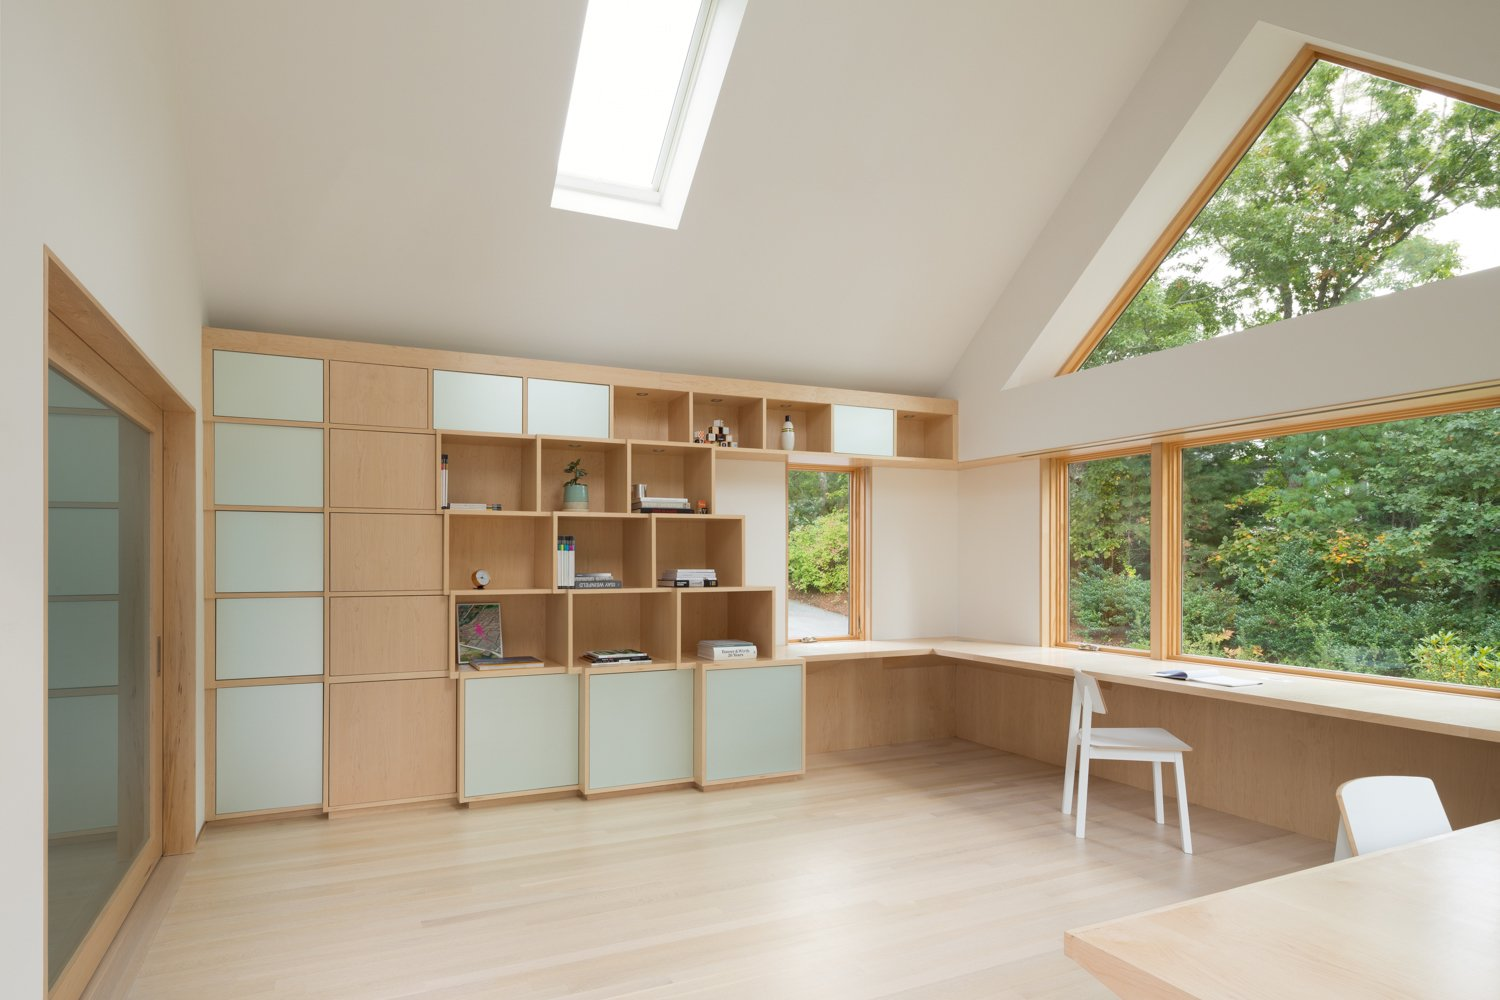 The pixelated shelving system, made of birch and acid-etched mirrored glass, as well as the cantilevered desk, were customized for the Woolford's space. A large glass sliding door framed in white oak separates the addition from the rest of the home. The chairs are from Ikea.